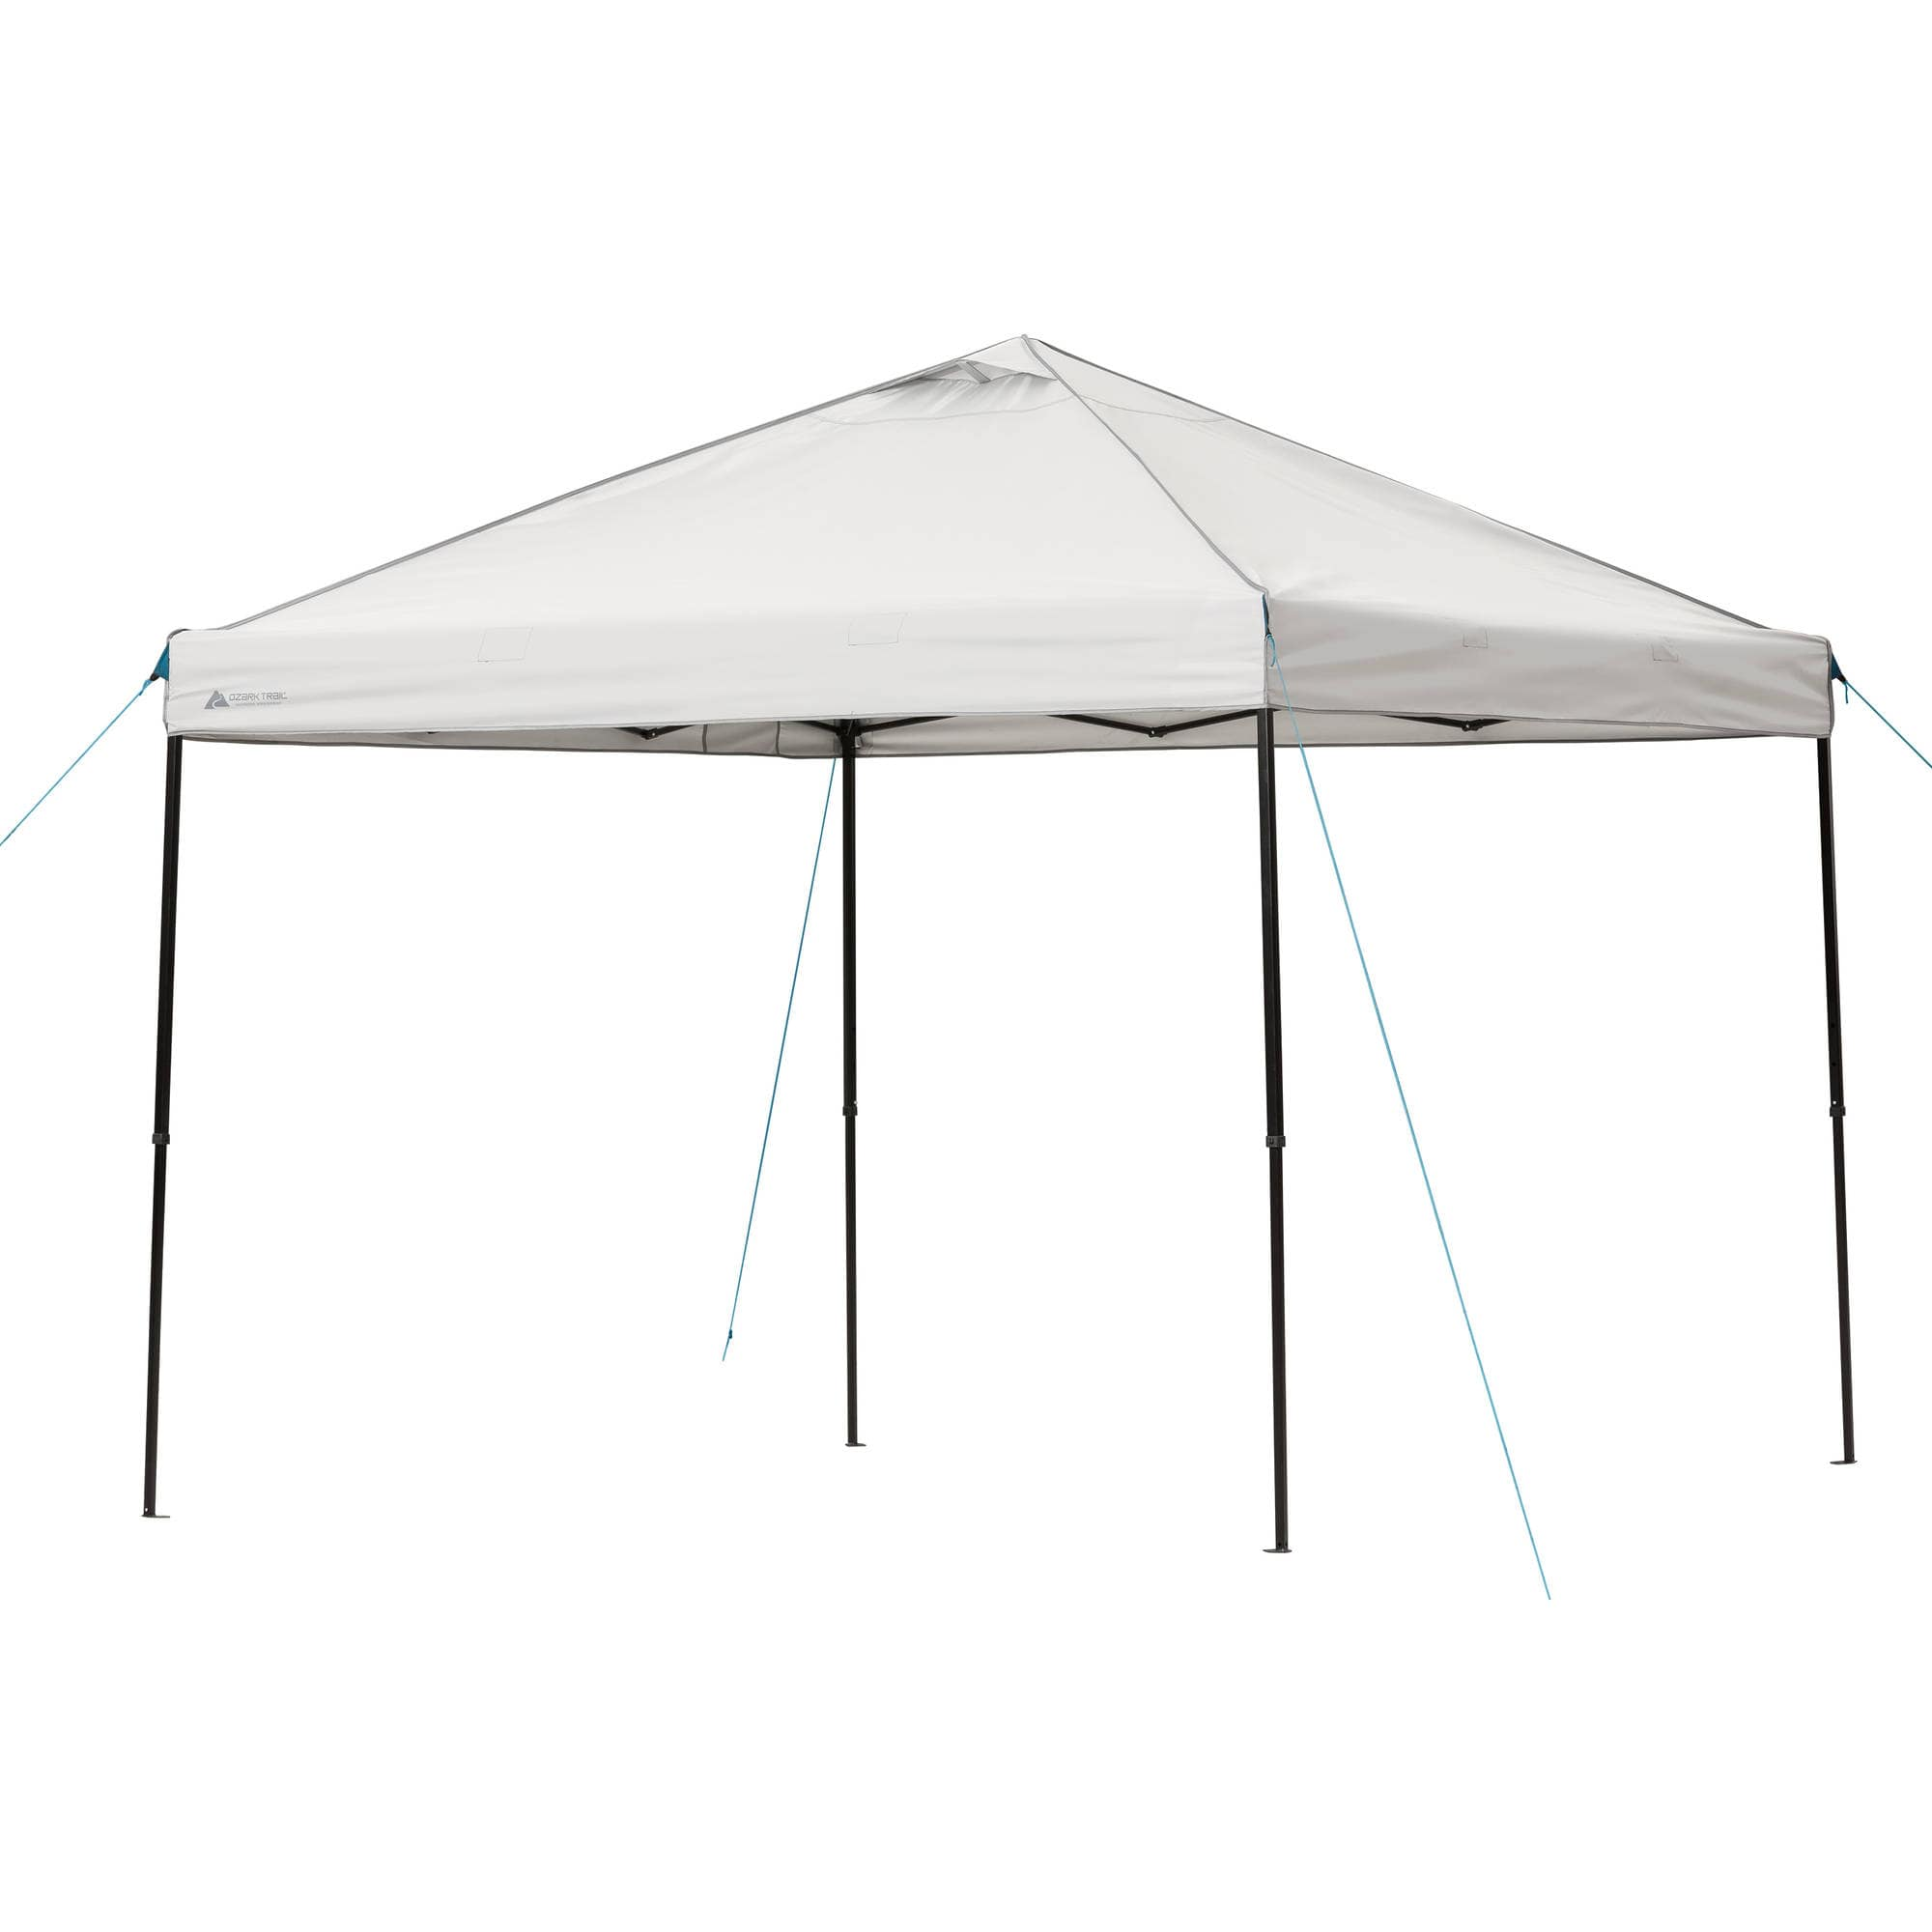 8x8 Canopy Tent Walmart Amp Best Designs Ideas Of Canopy